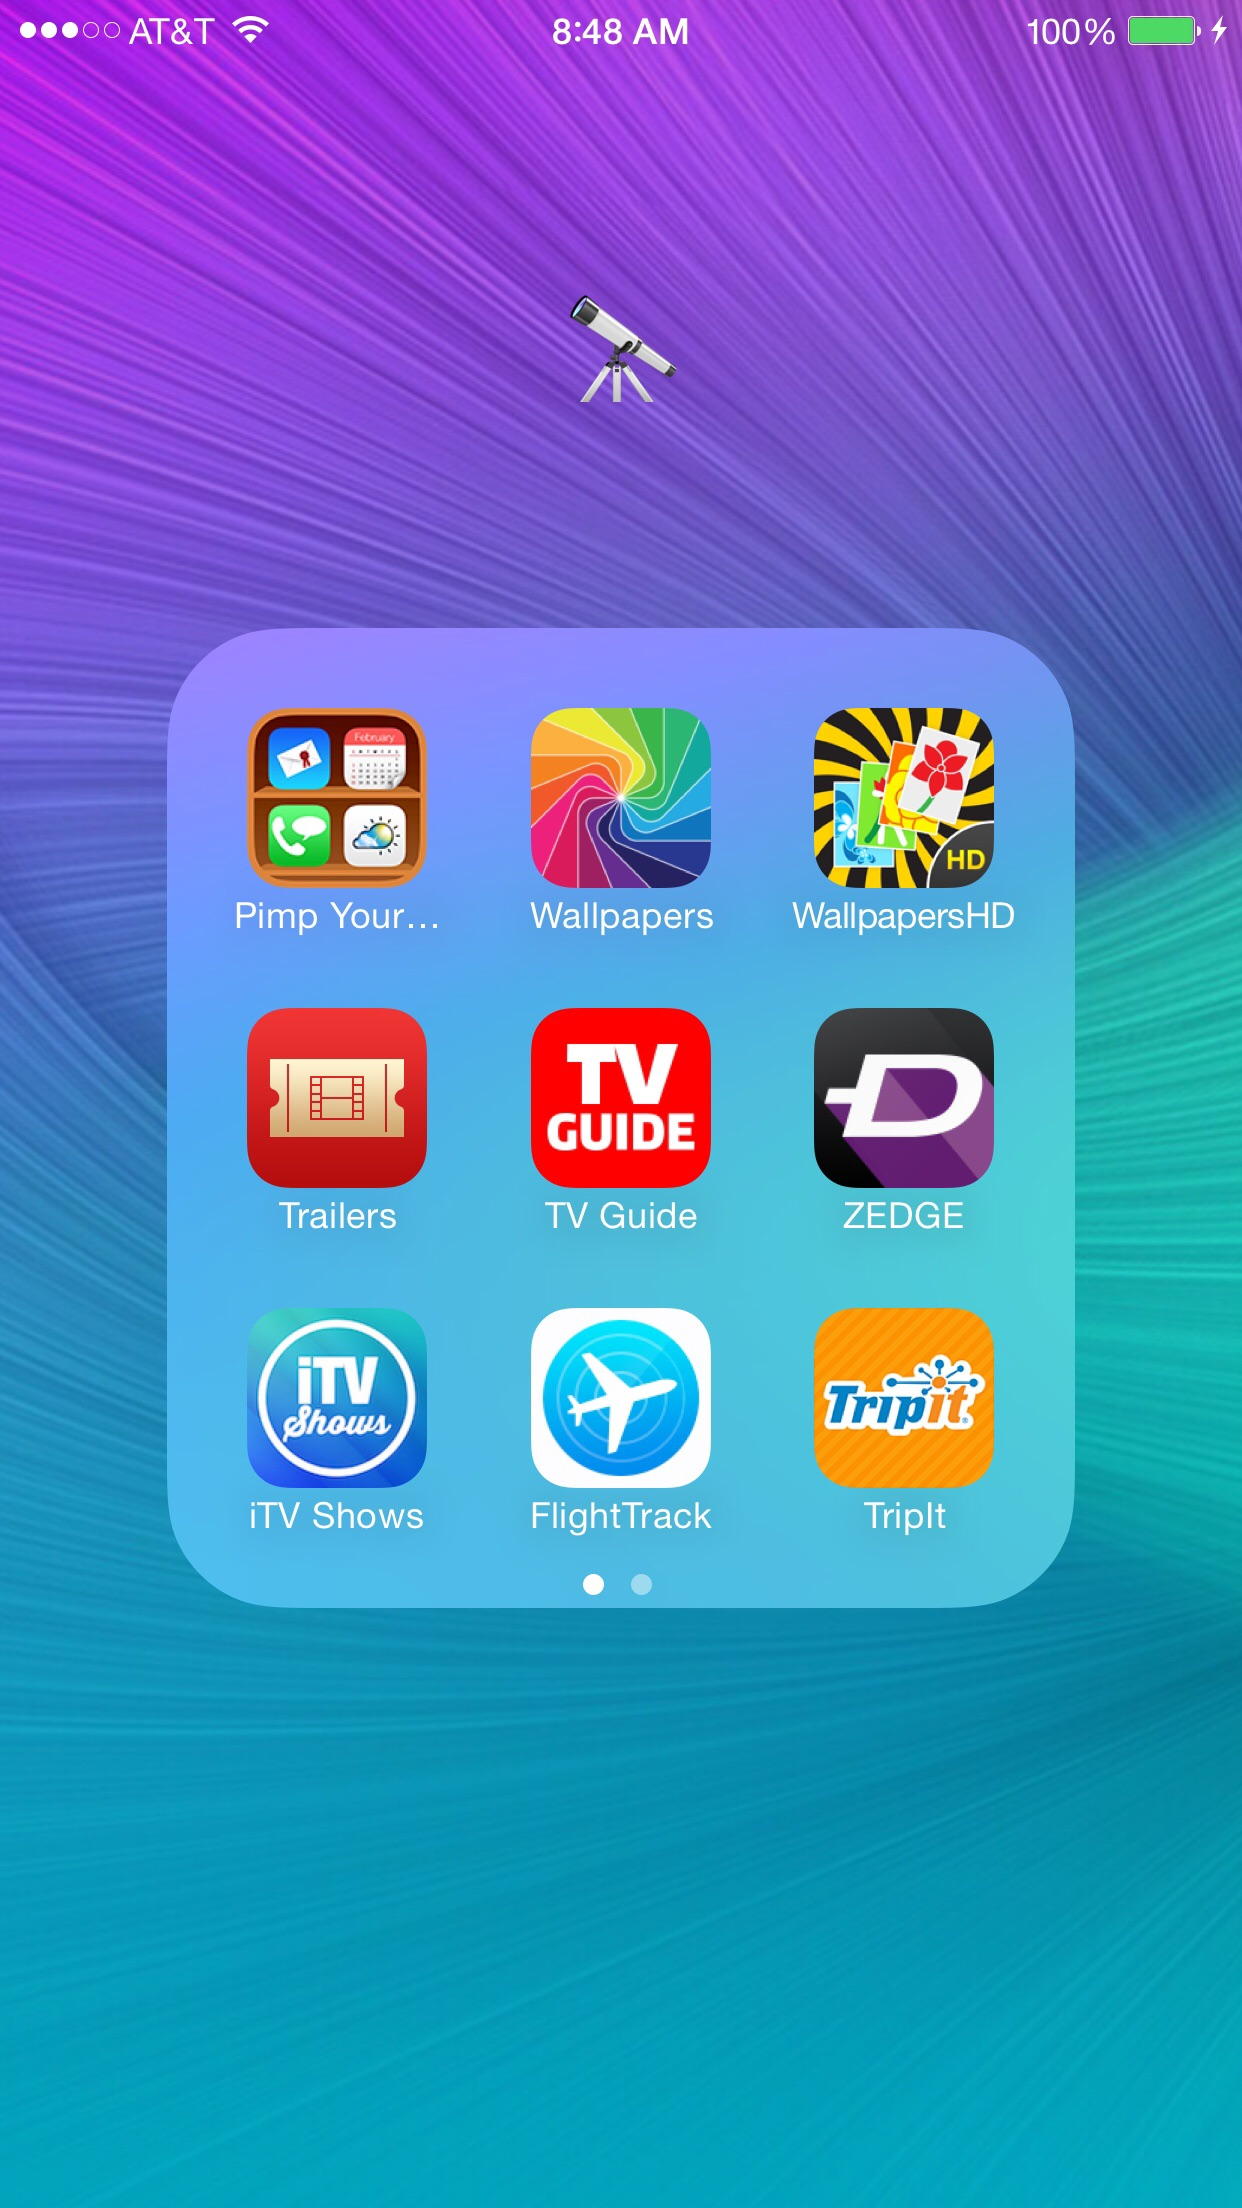 Download Any Good Hd Retina Wallpapers App For The Iphone 6 Plus